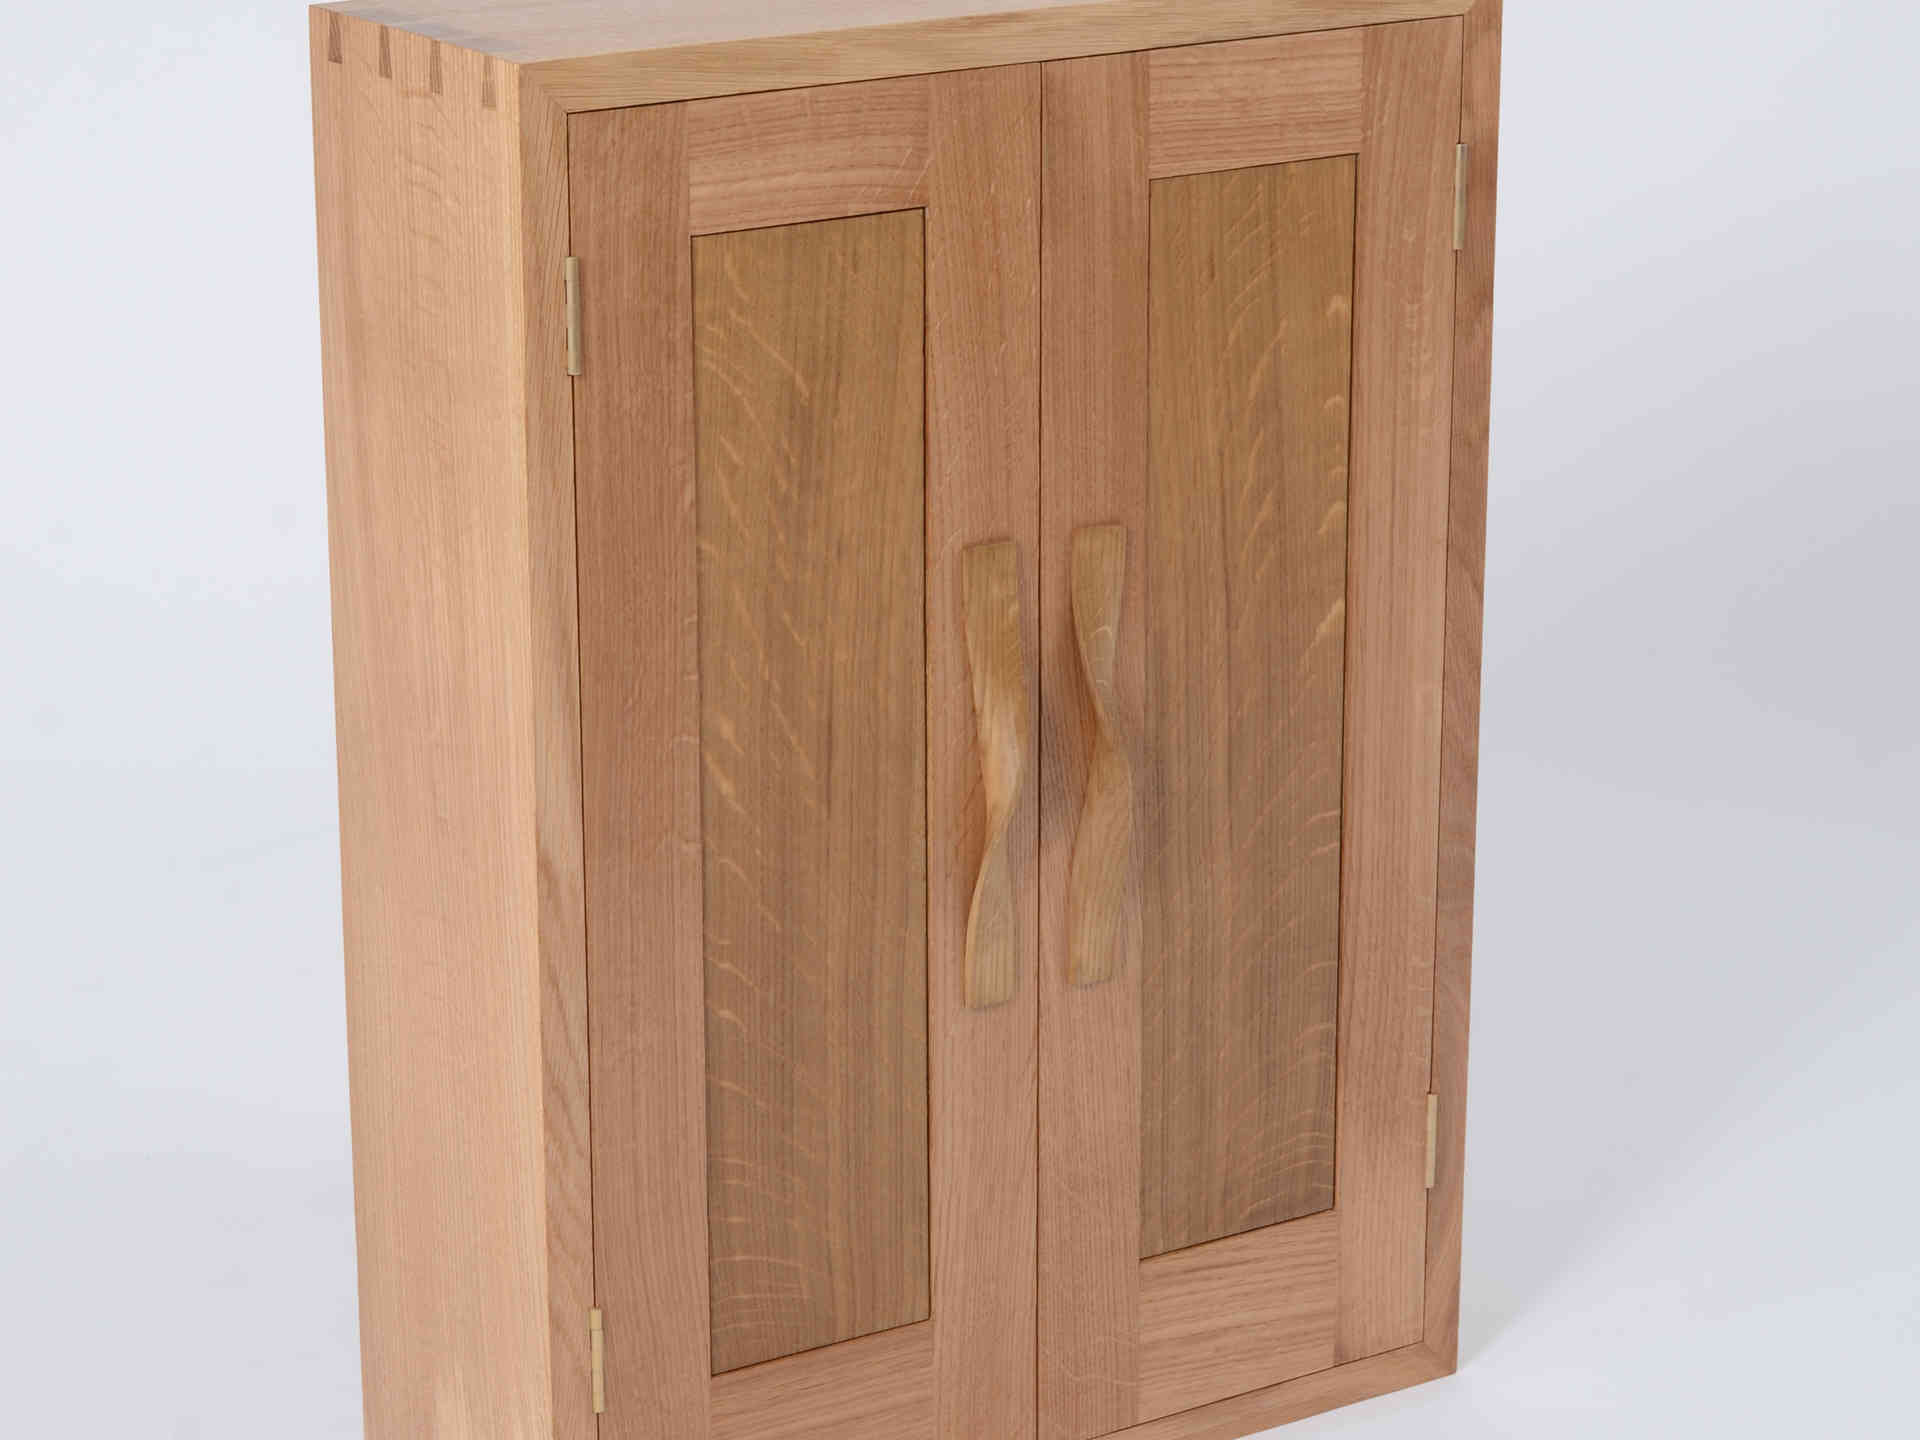 Small Oak Wall Cabinet